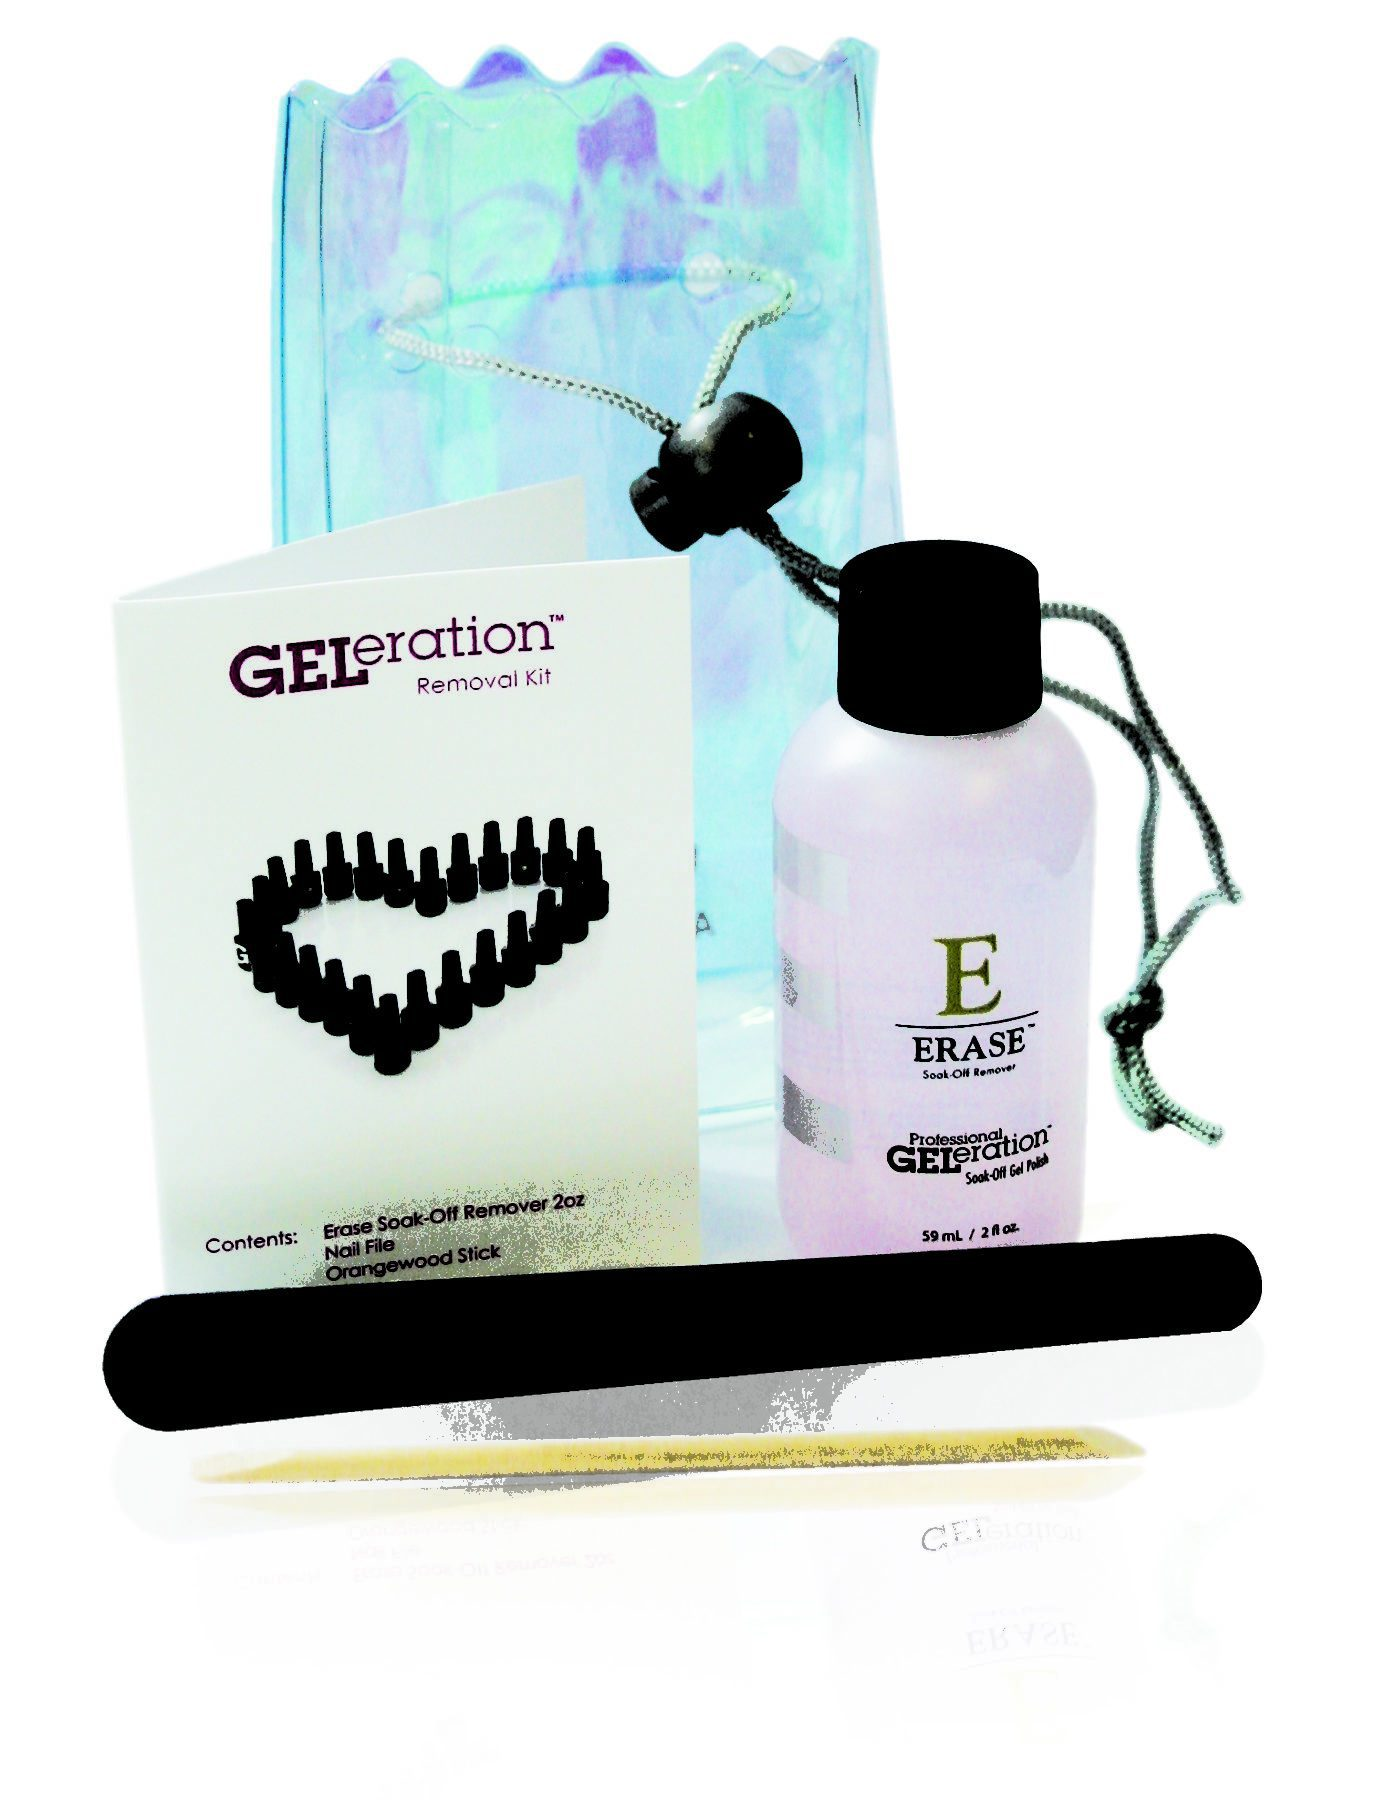 Jessica GELeration Home Removal Kit From Le Petit Sanctuary, Taunton